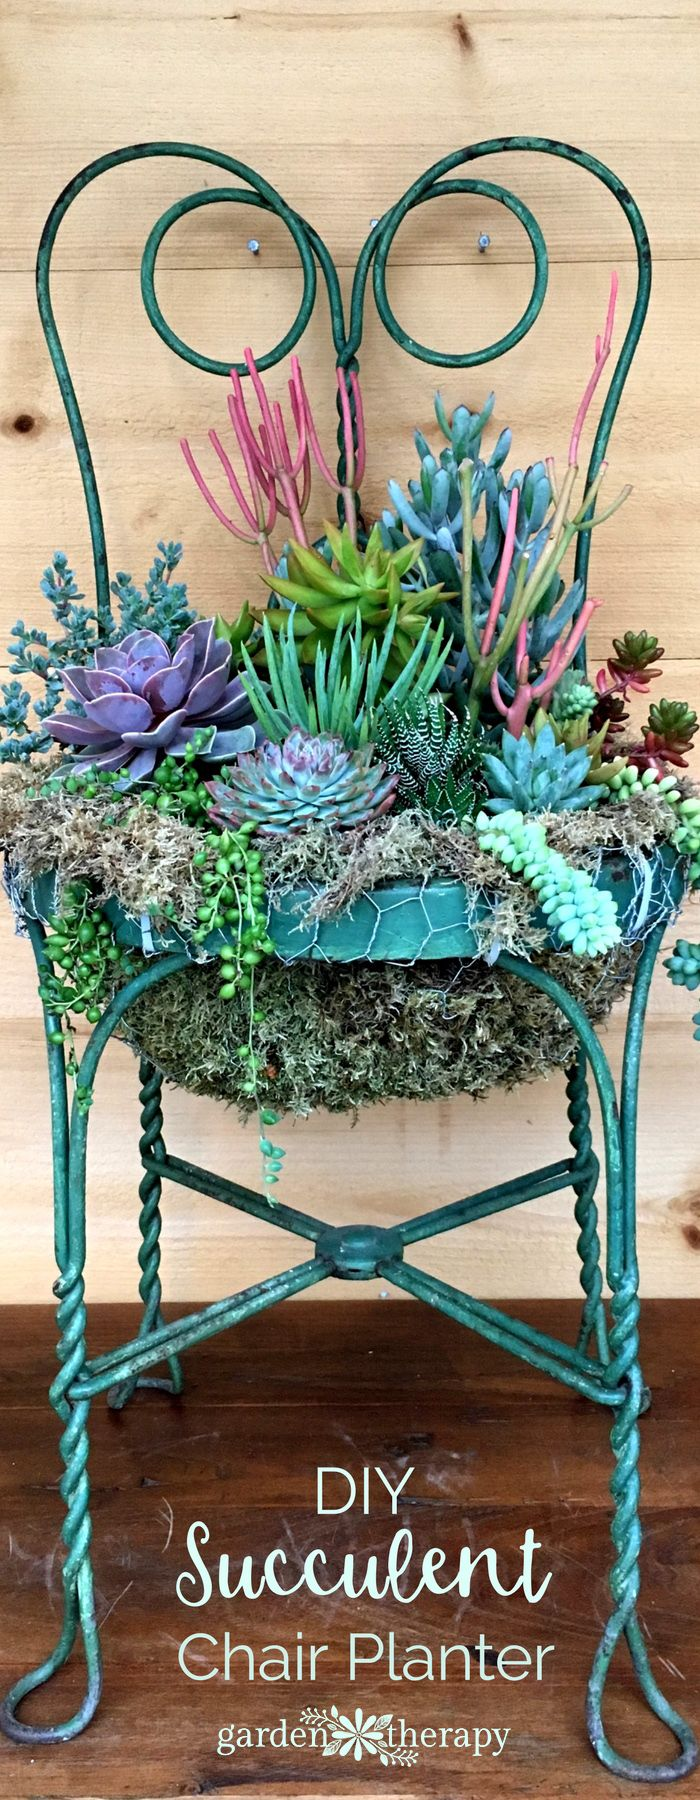 Set a Place in the Garden for a Succulent Chair Planter | Chair ...